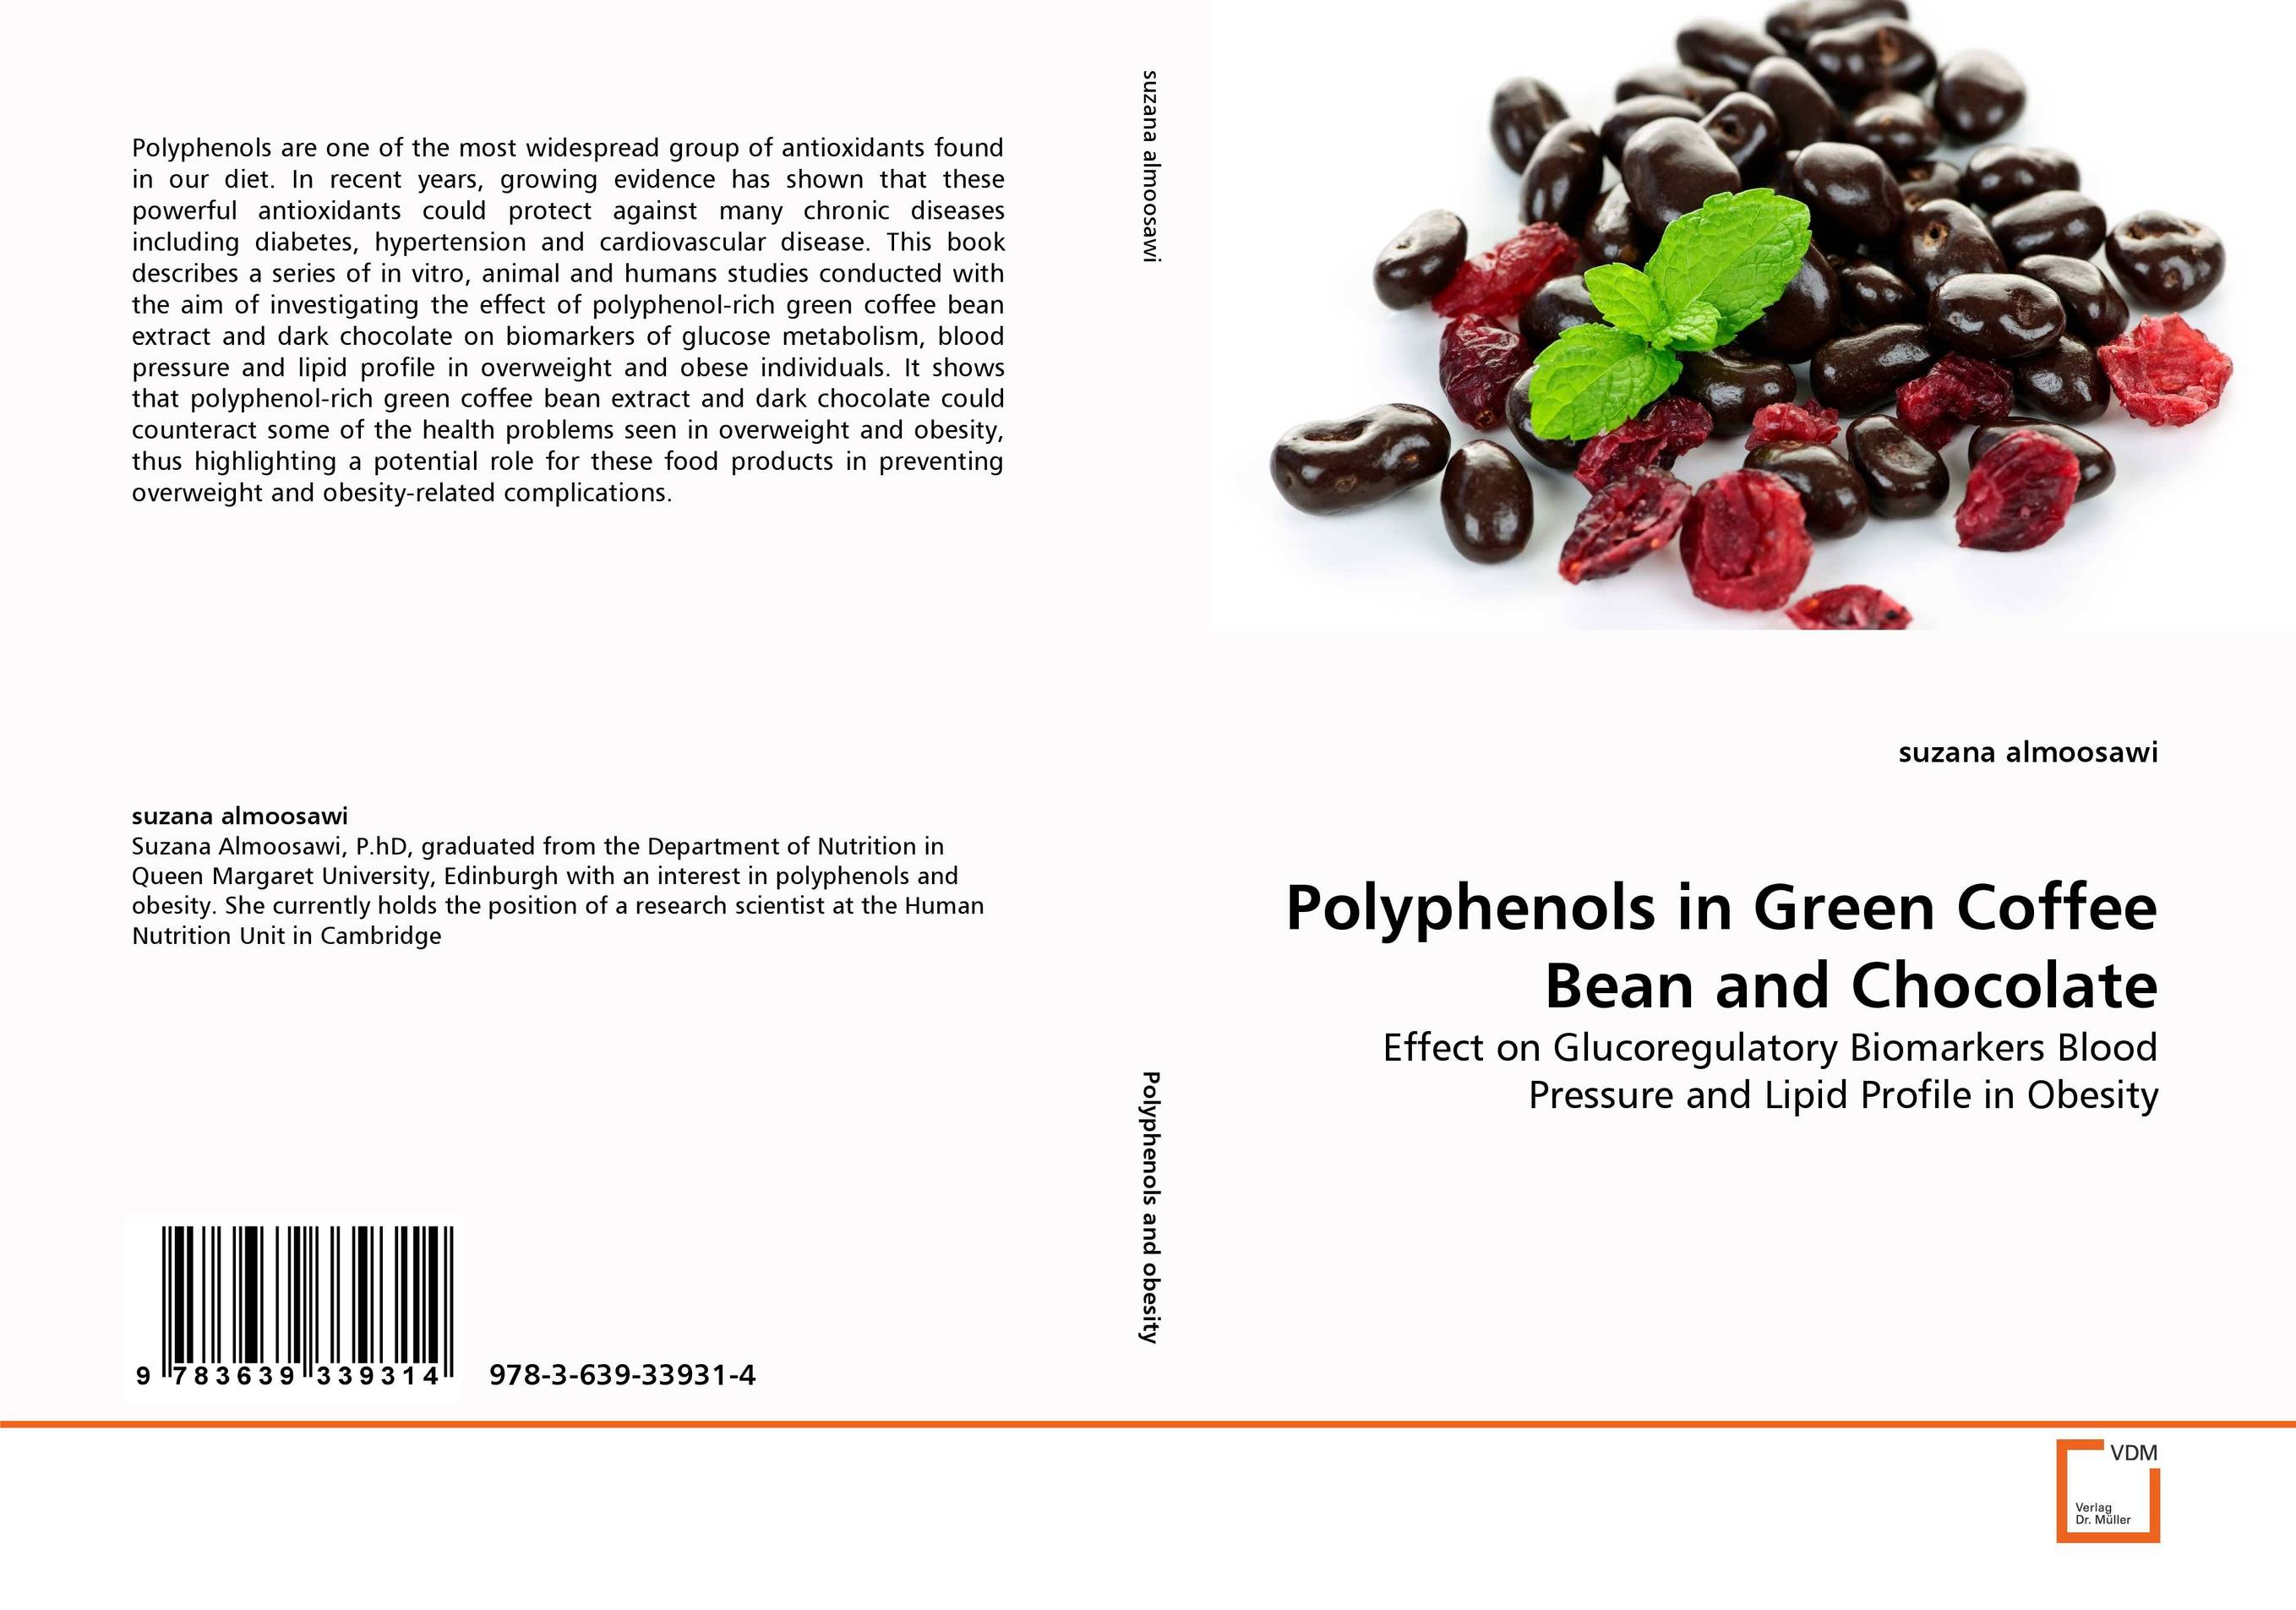 Polyphenols in Green Coffee Bean and Chocolate polyphenols in green coffee bean and chocolate